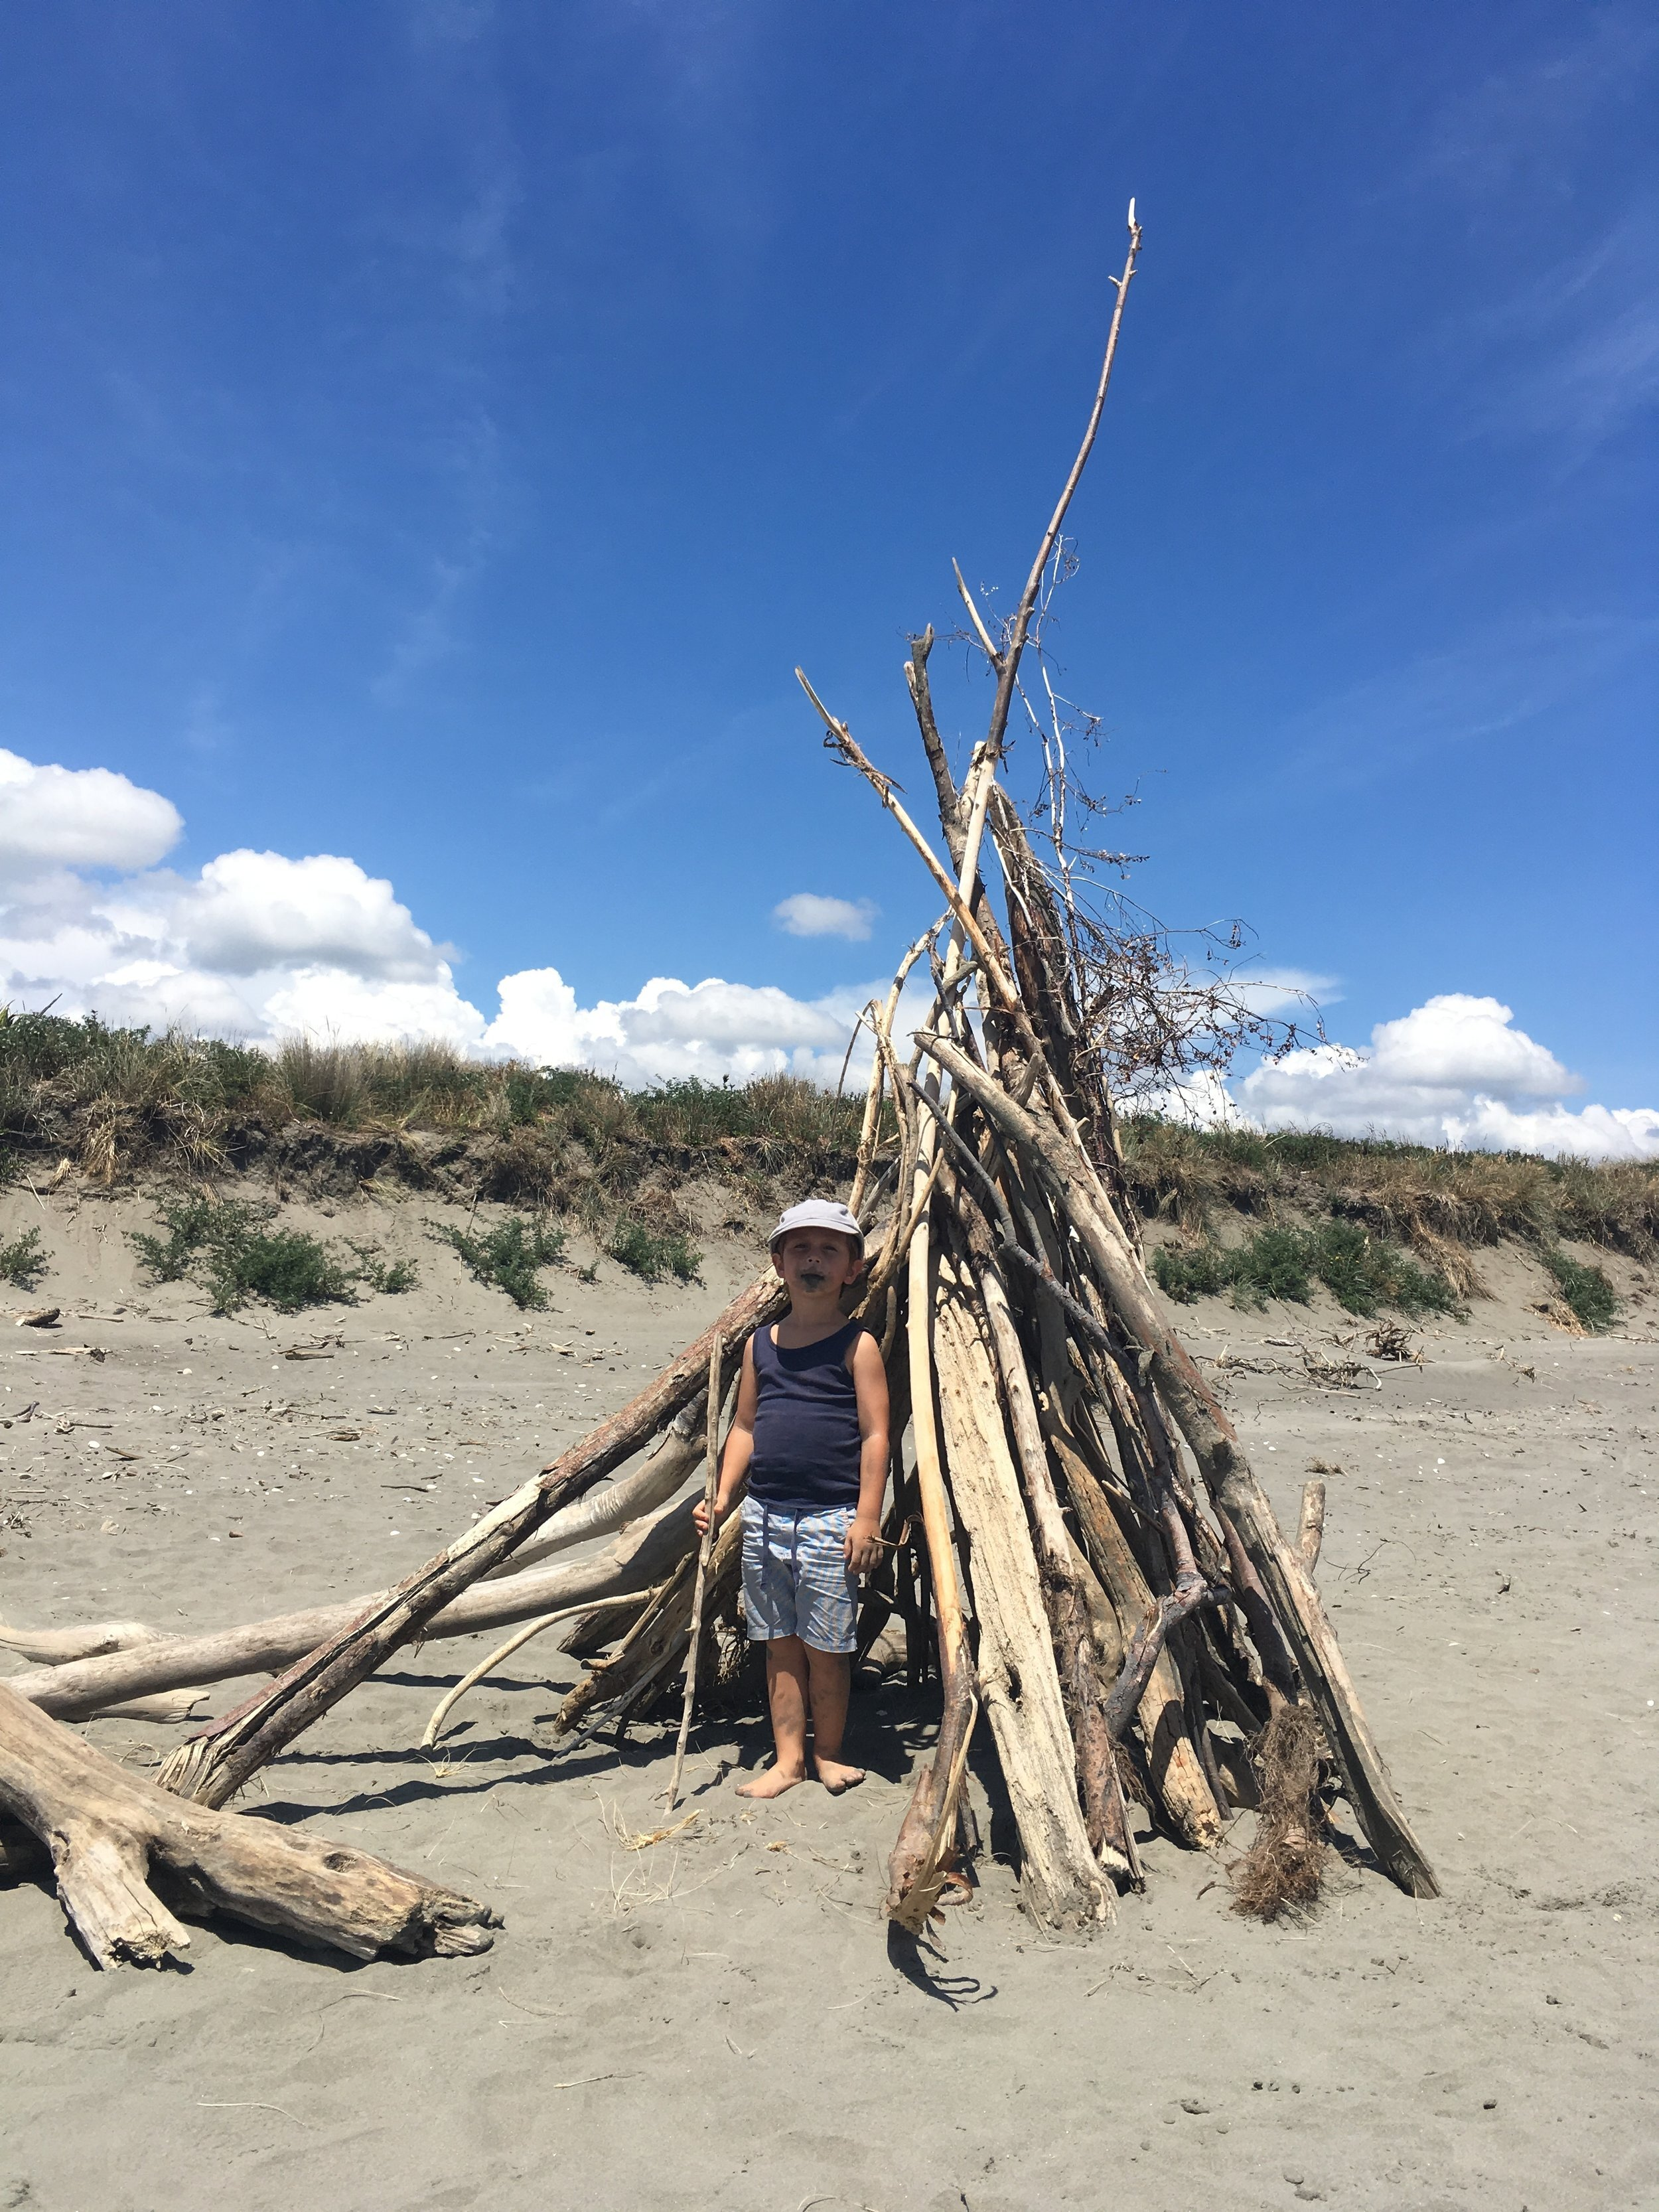 We found this tent of sticks on the beach. They ran to play the Indians and ninjas.